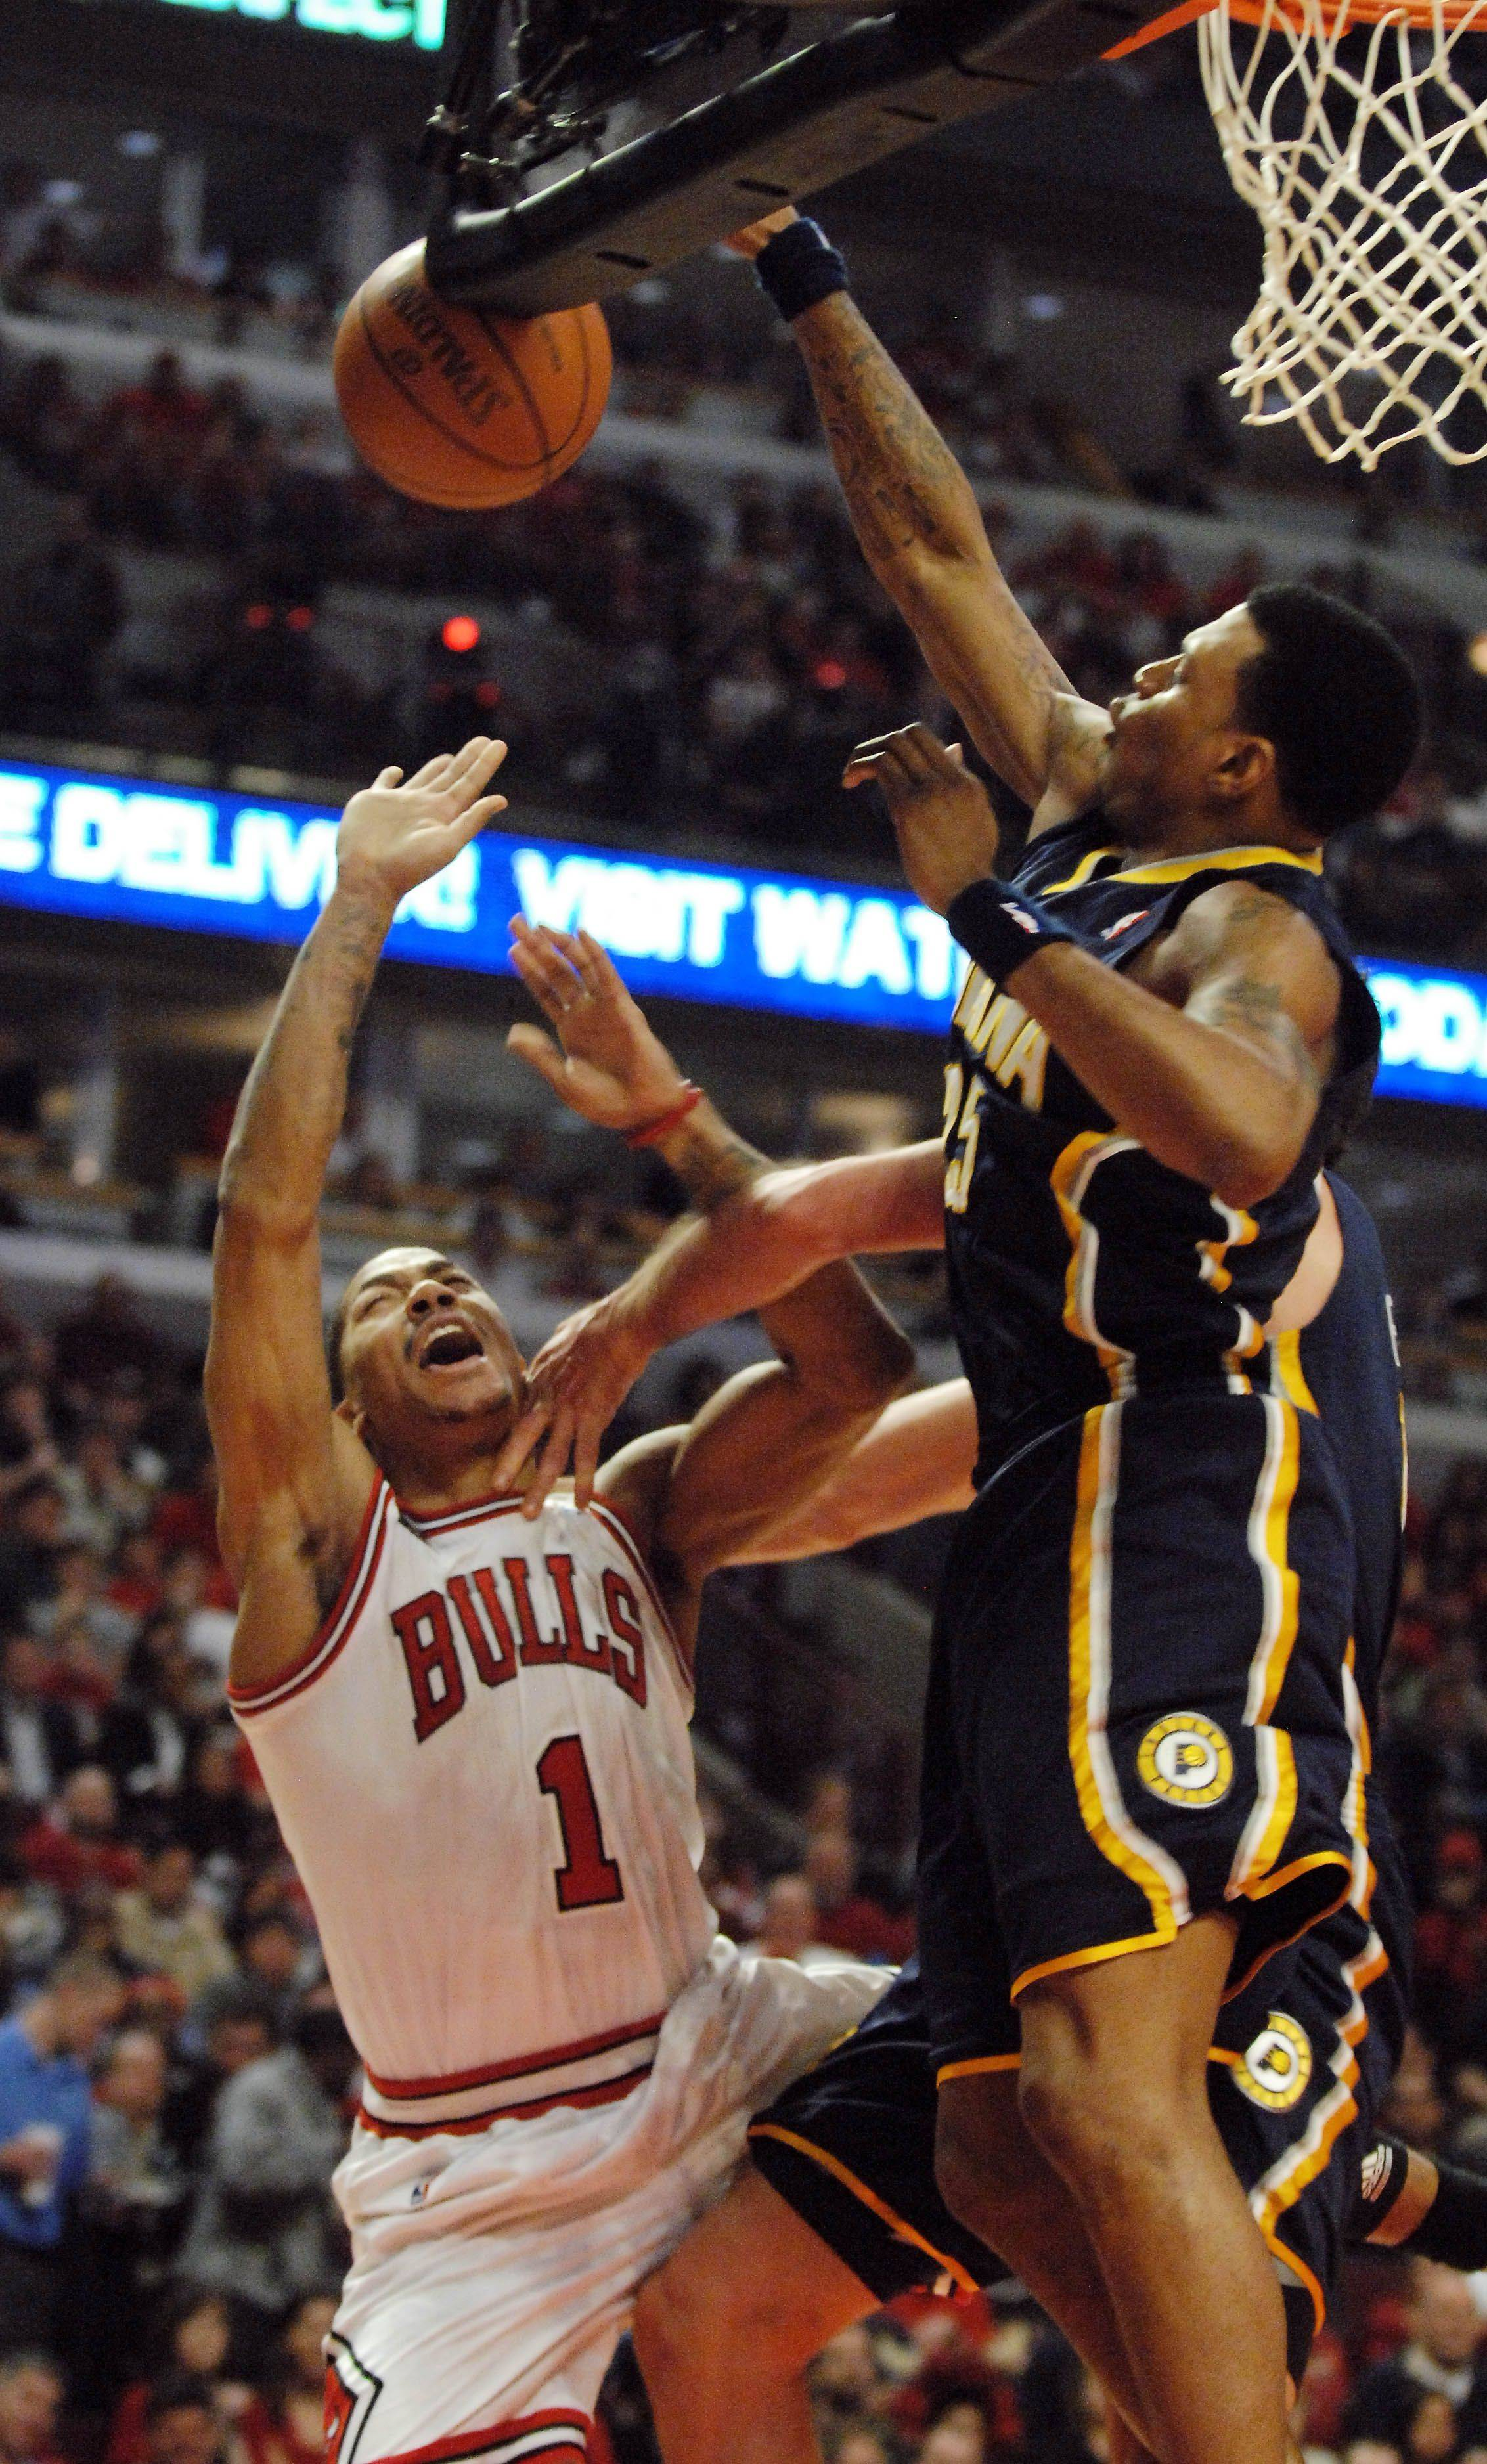 Chicago Bulls point guard Derrick Rose (1) gets fouled going to the basket by Indiana Pacers center Jeff Foster (10, not seen), igniting some tense words to be exchanged during Game One of the NBA Eastern Conference Quarterfinals Saturday at the United Center in Chicago.